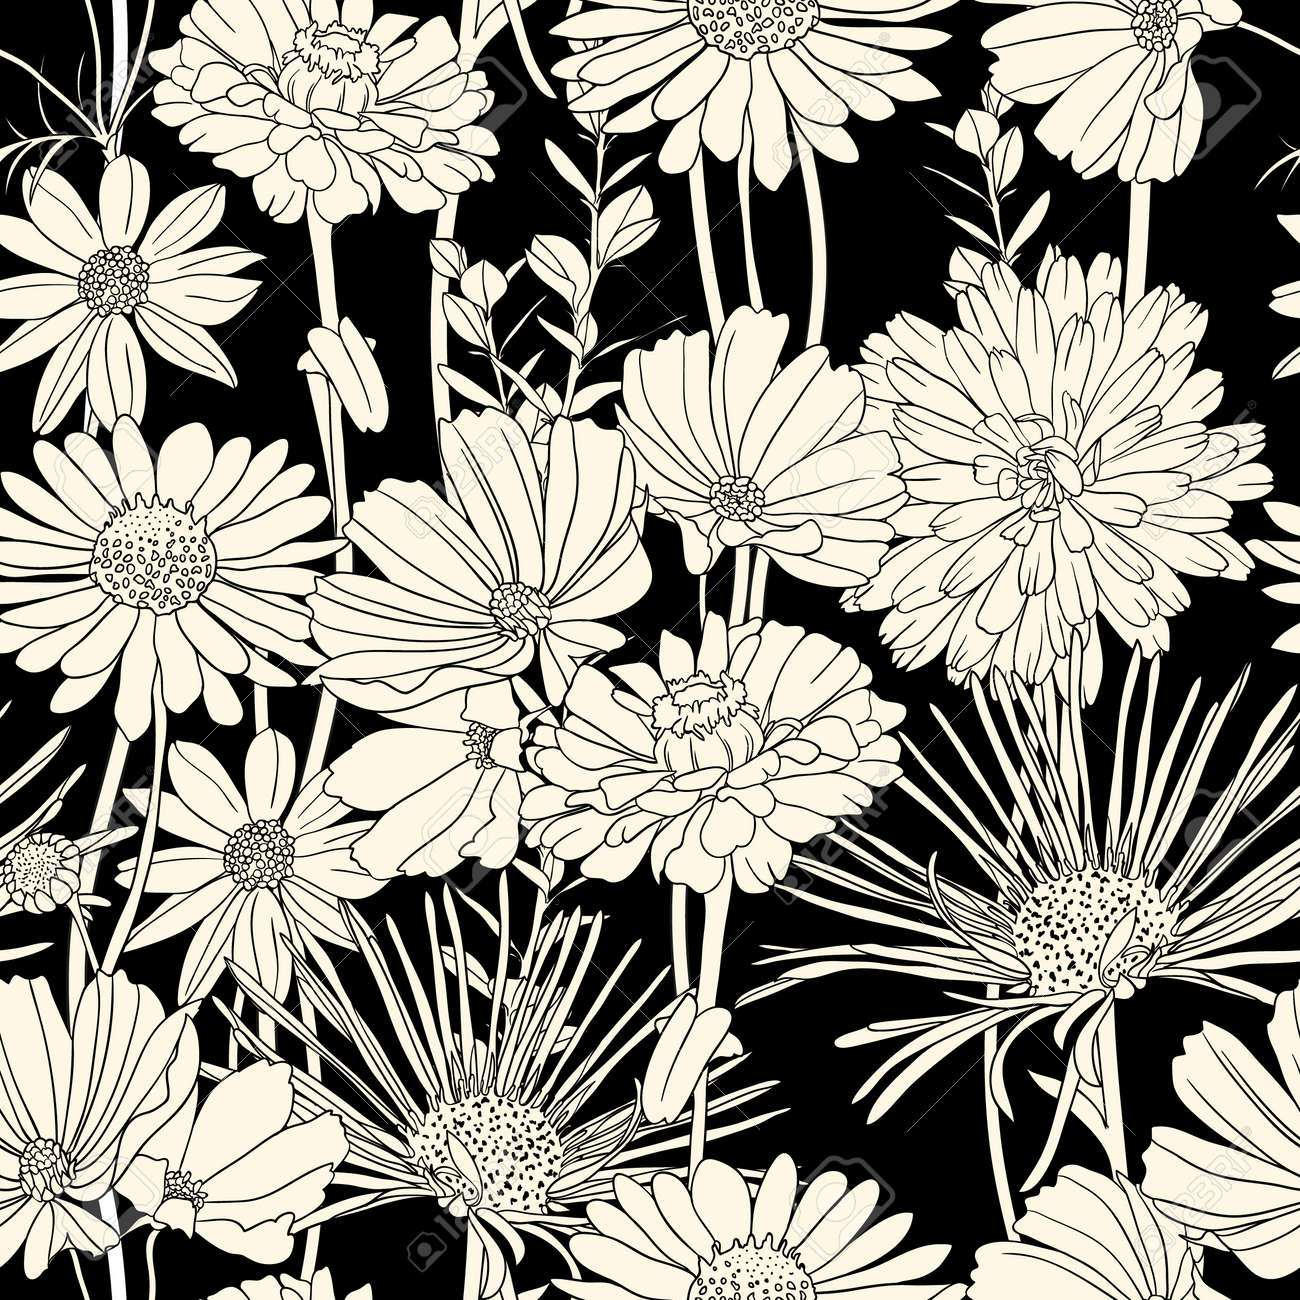 Floral Seamless Pattern With Hand Drawn Flowers Black And White